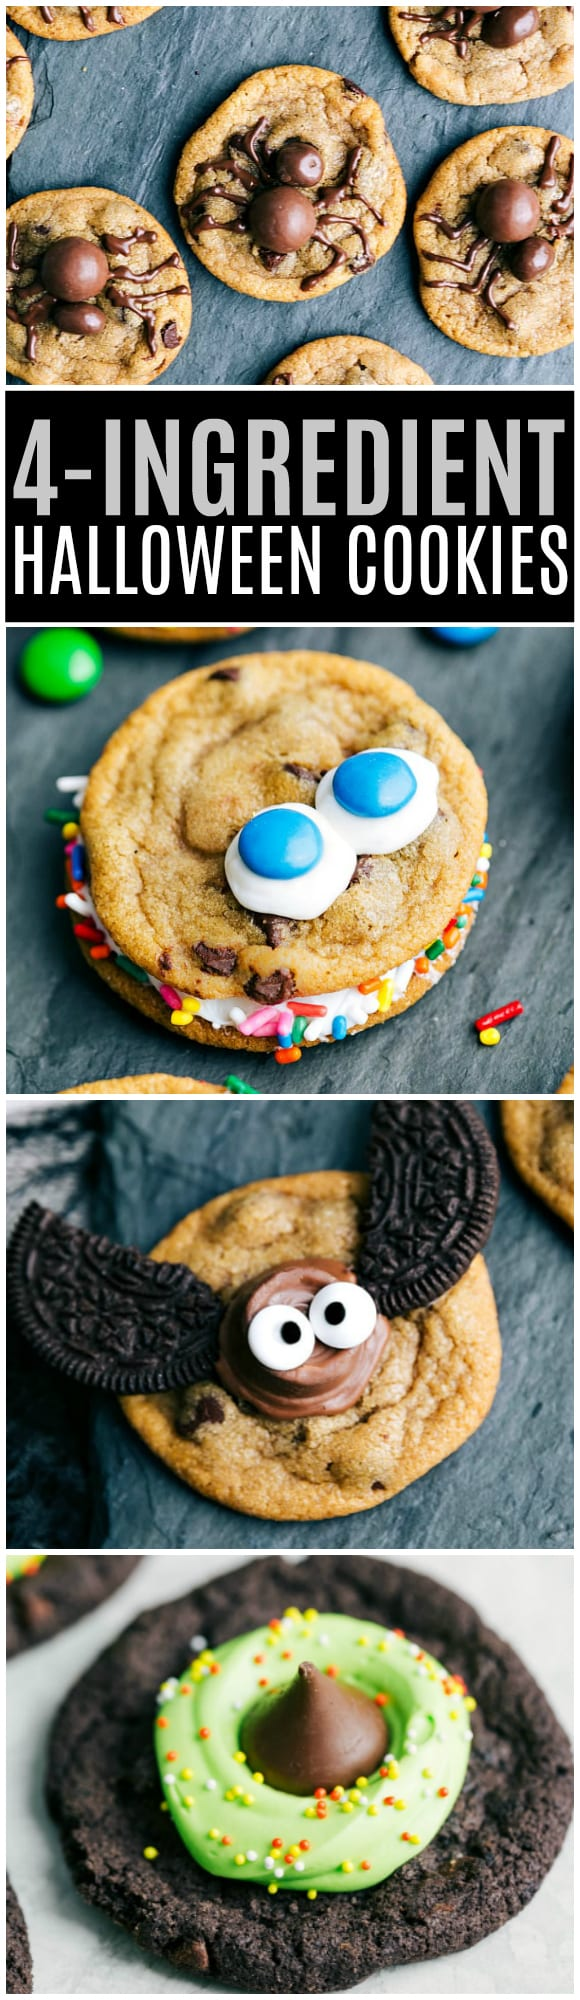 FOUR Halloween Cookies with only FOUR ingredients each!! Spider, monster, bat, and witch hat cookies are the perfect easy (and great last minute) Halloween treat via chelseasmessyapron.com #halloween #treat #cookie #cookies #bat #witch #hat #spider #monster #easy #kidfriendly #cute